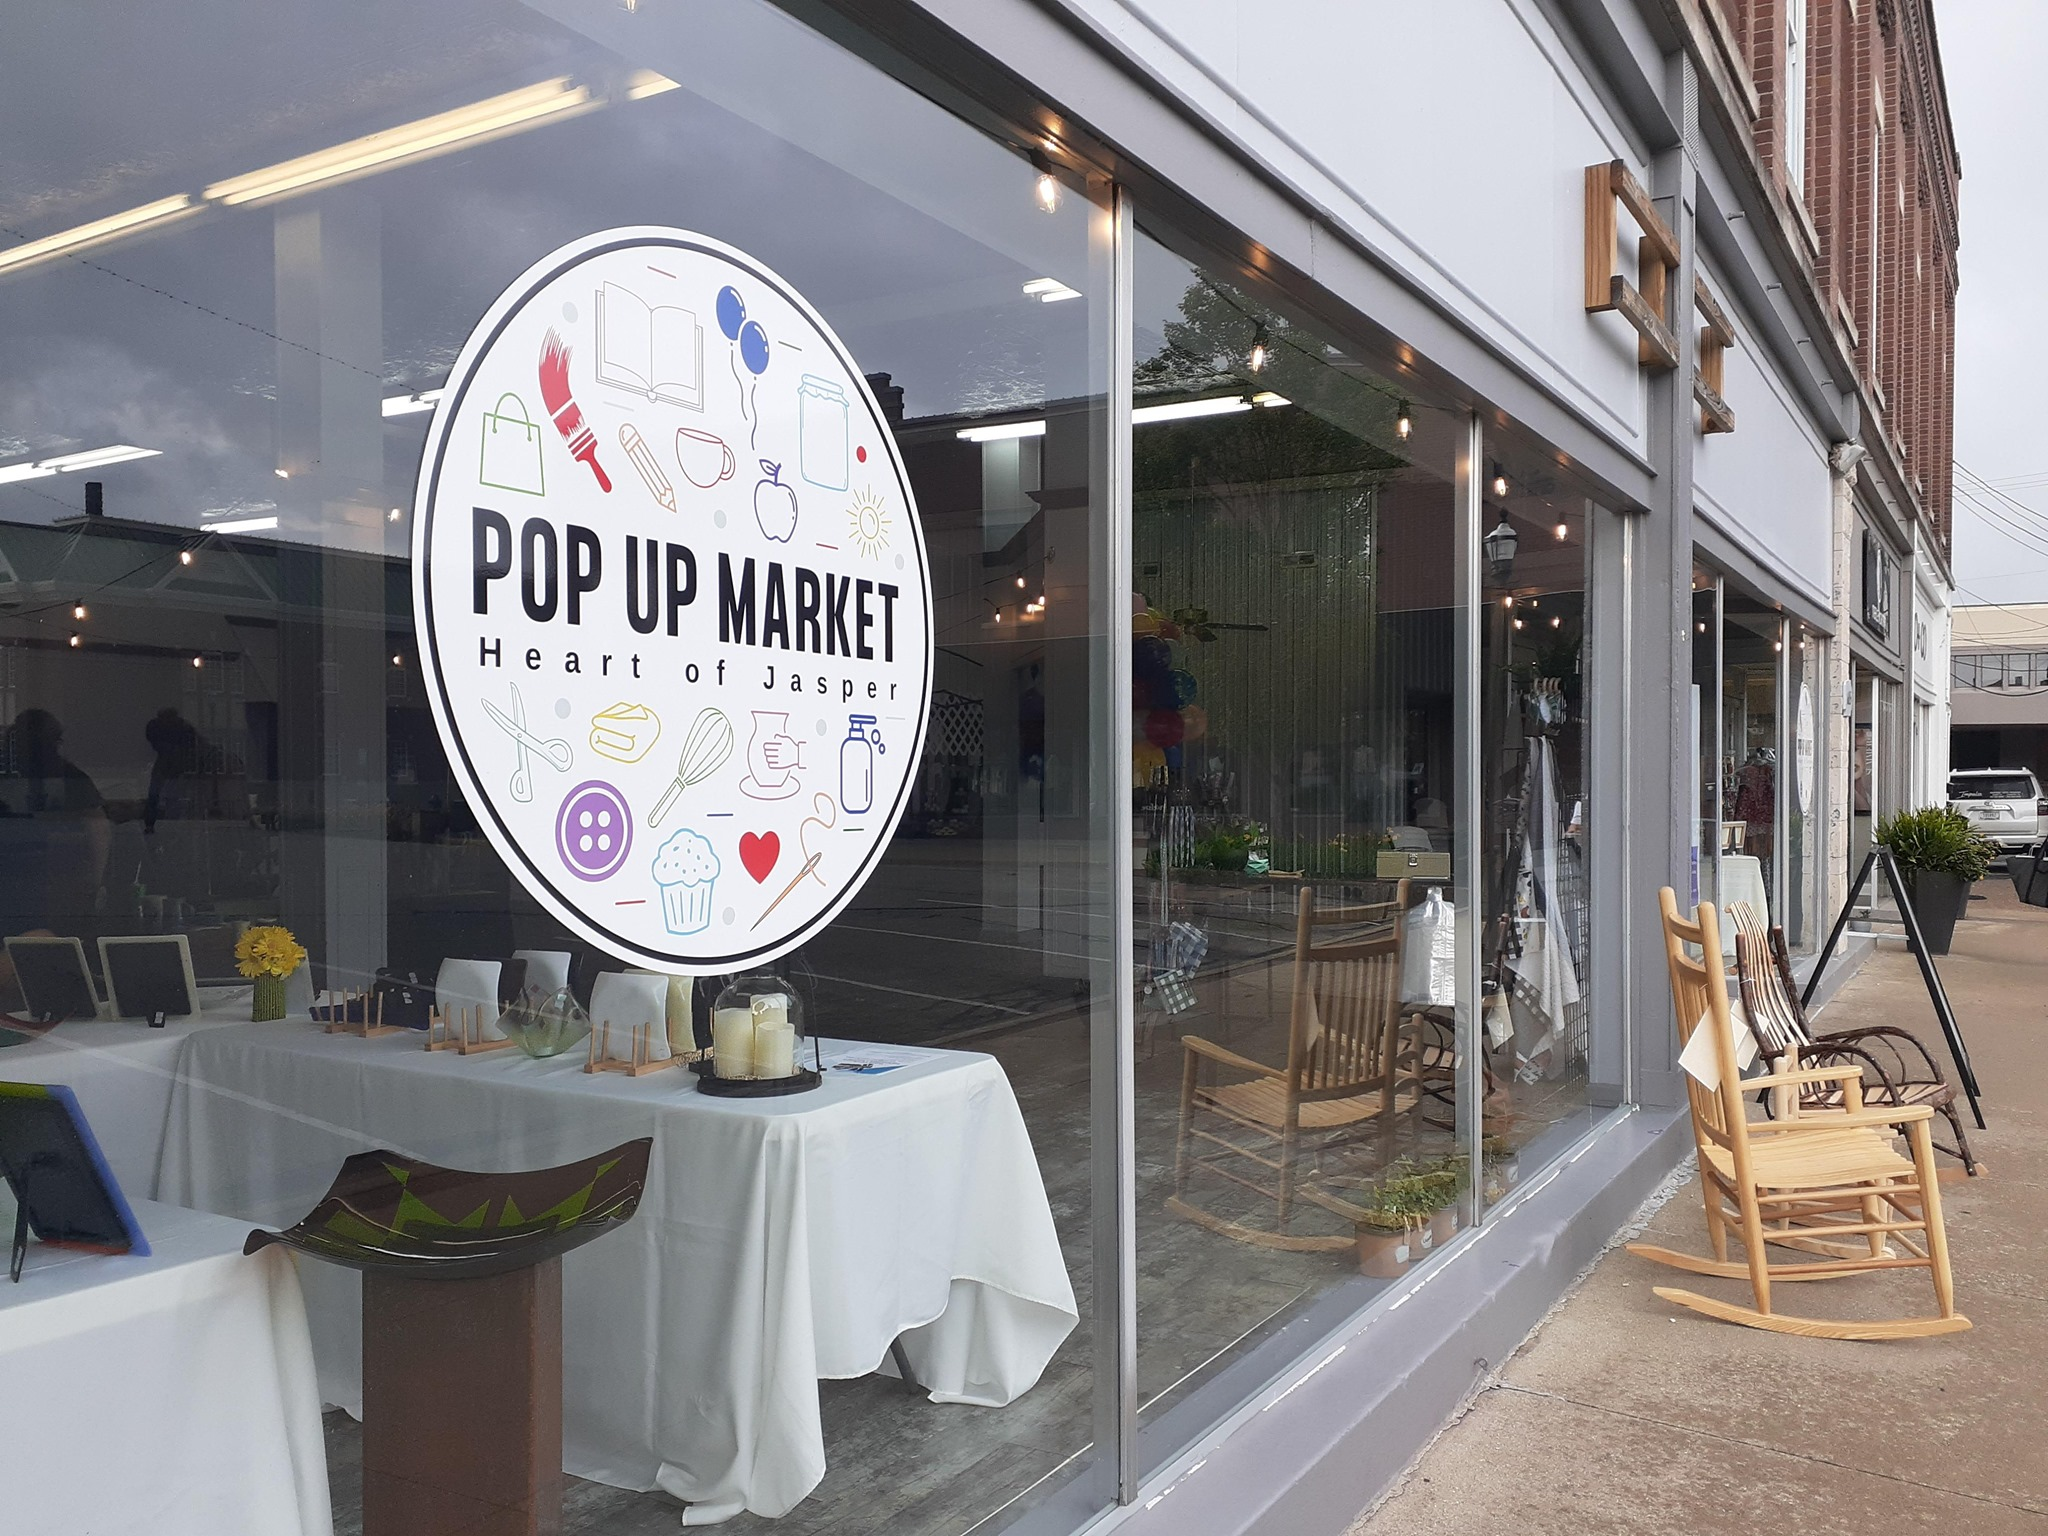 Vendors, Markets, Patrons Brave Wednesday Rain for Downtown Chowdown and Pop Up Market